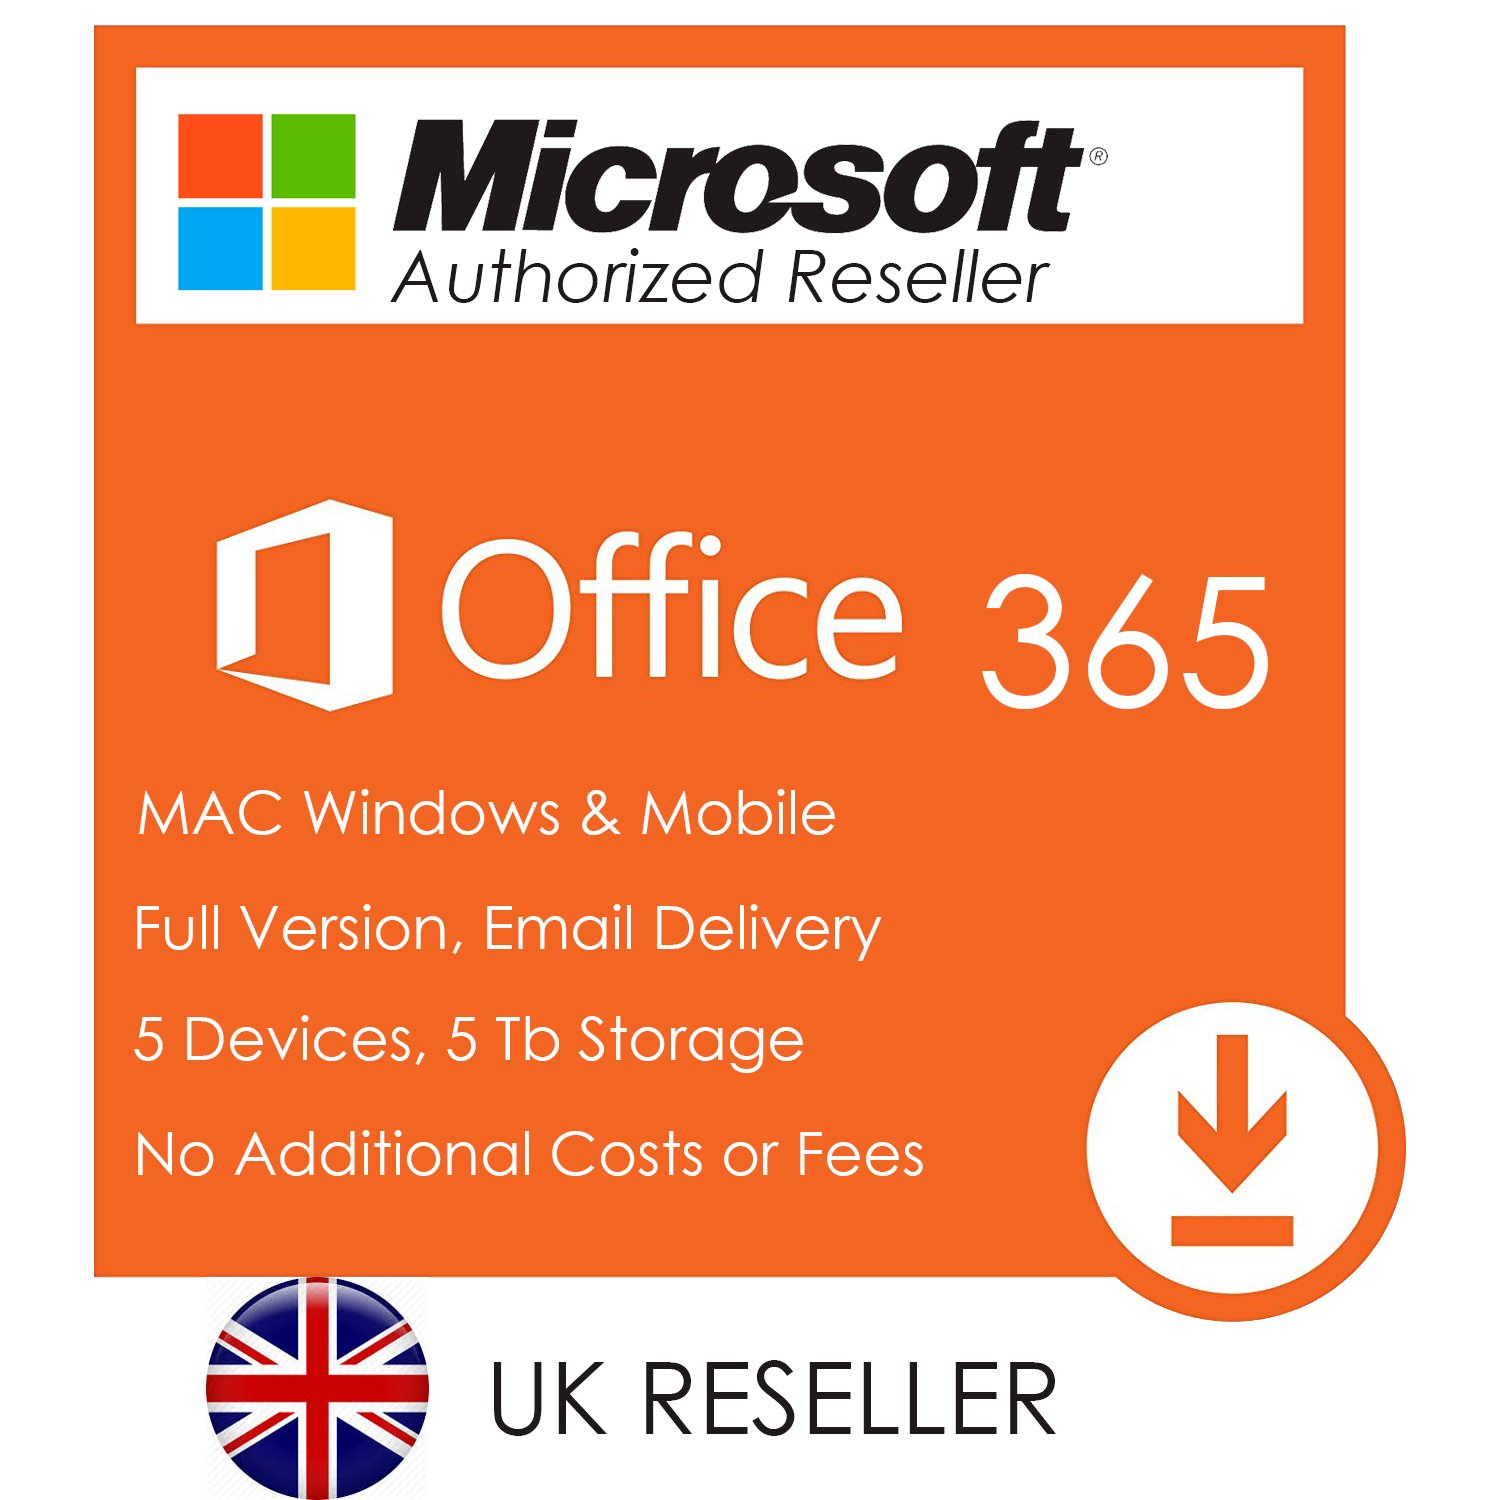 Microsoft Office 365 Account - Office 2016 for 5 Devices 32/64 Bit PC/Mac  and 5Tb Onedrive - Full UK Version - Free Email Delivery